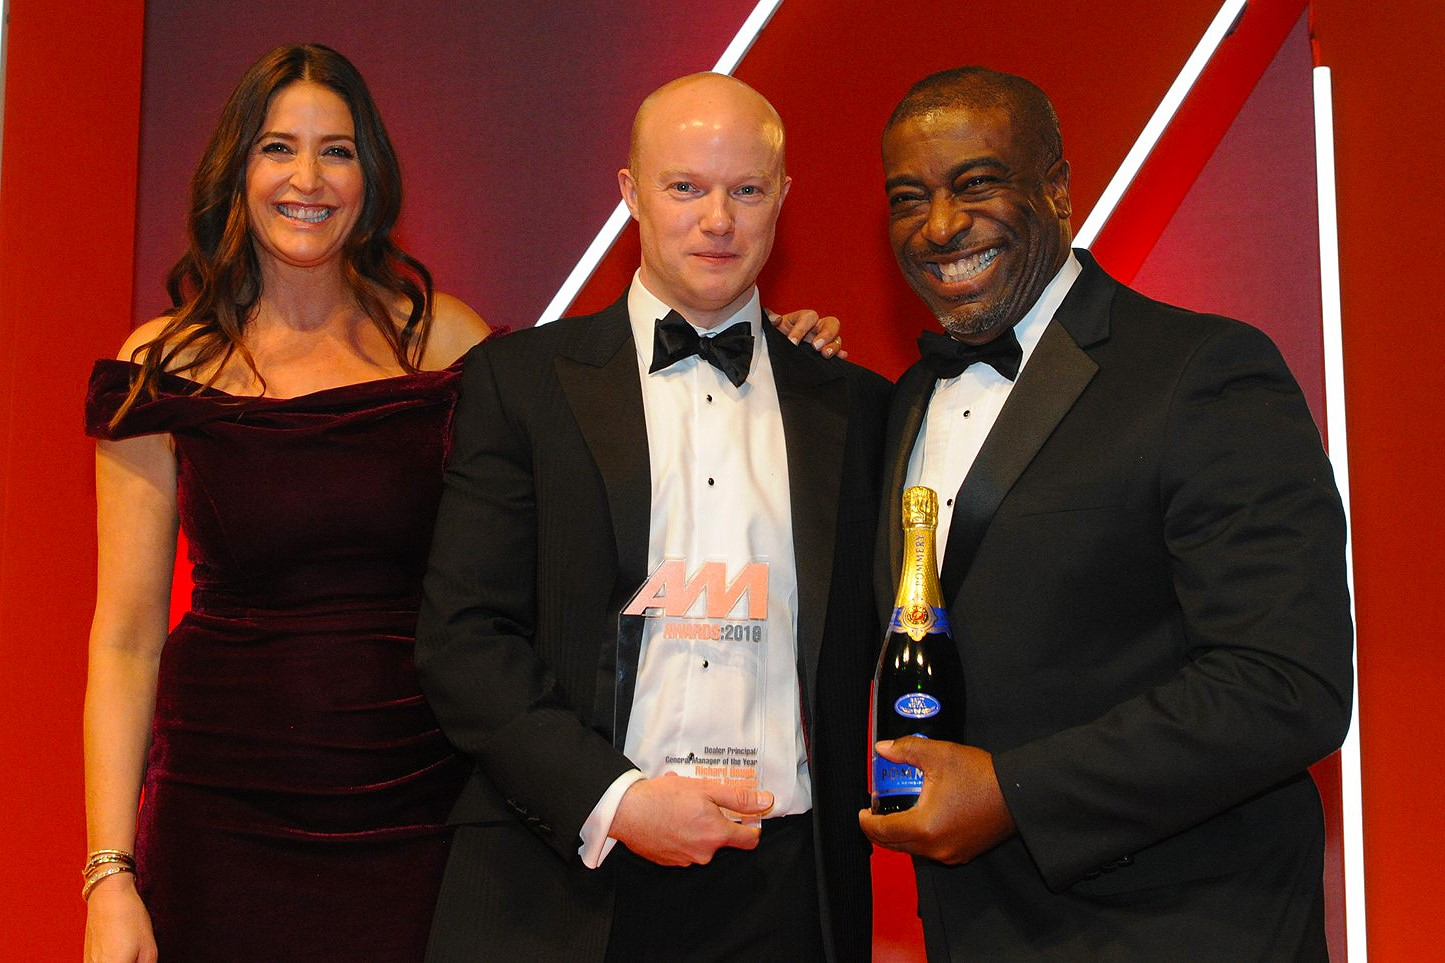 Richard Gough, general manager, Mercedes-Benz of Preston, accepts the award from Andrew Landell, managing director, LTK Consultants, right, and Lisa Snowdon, left